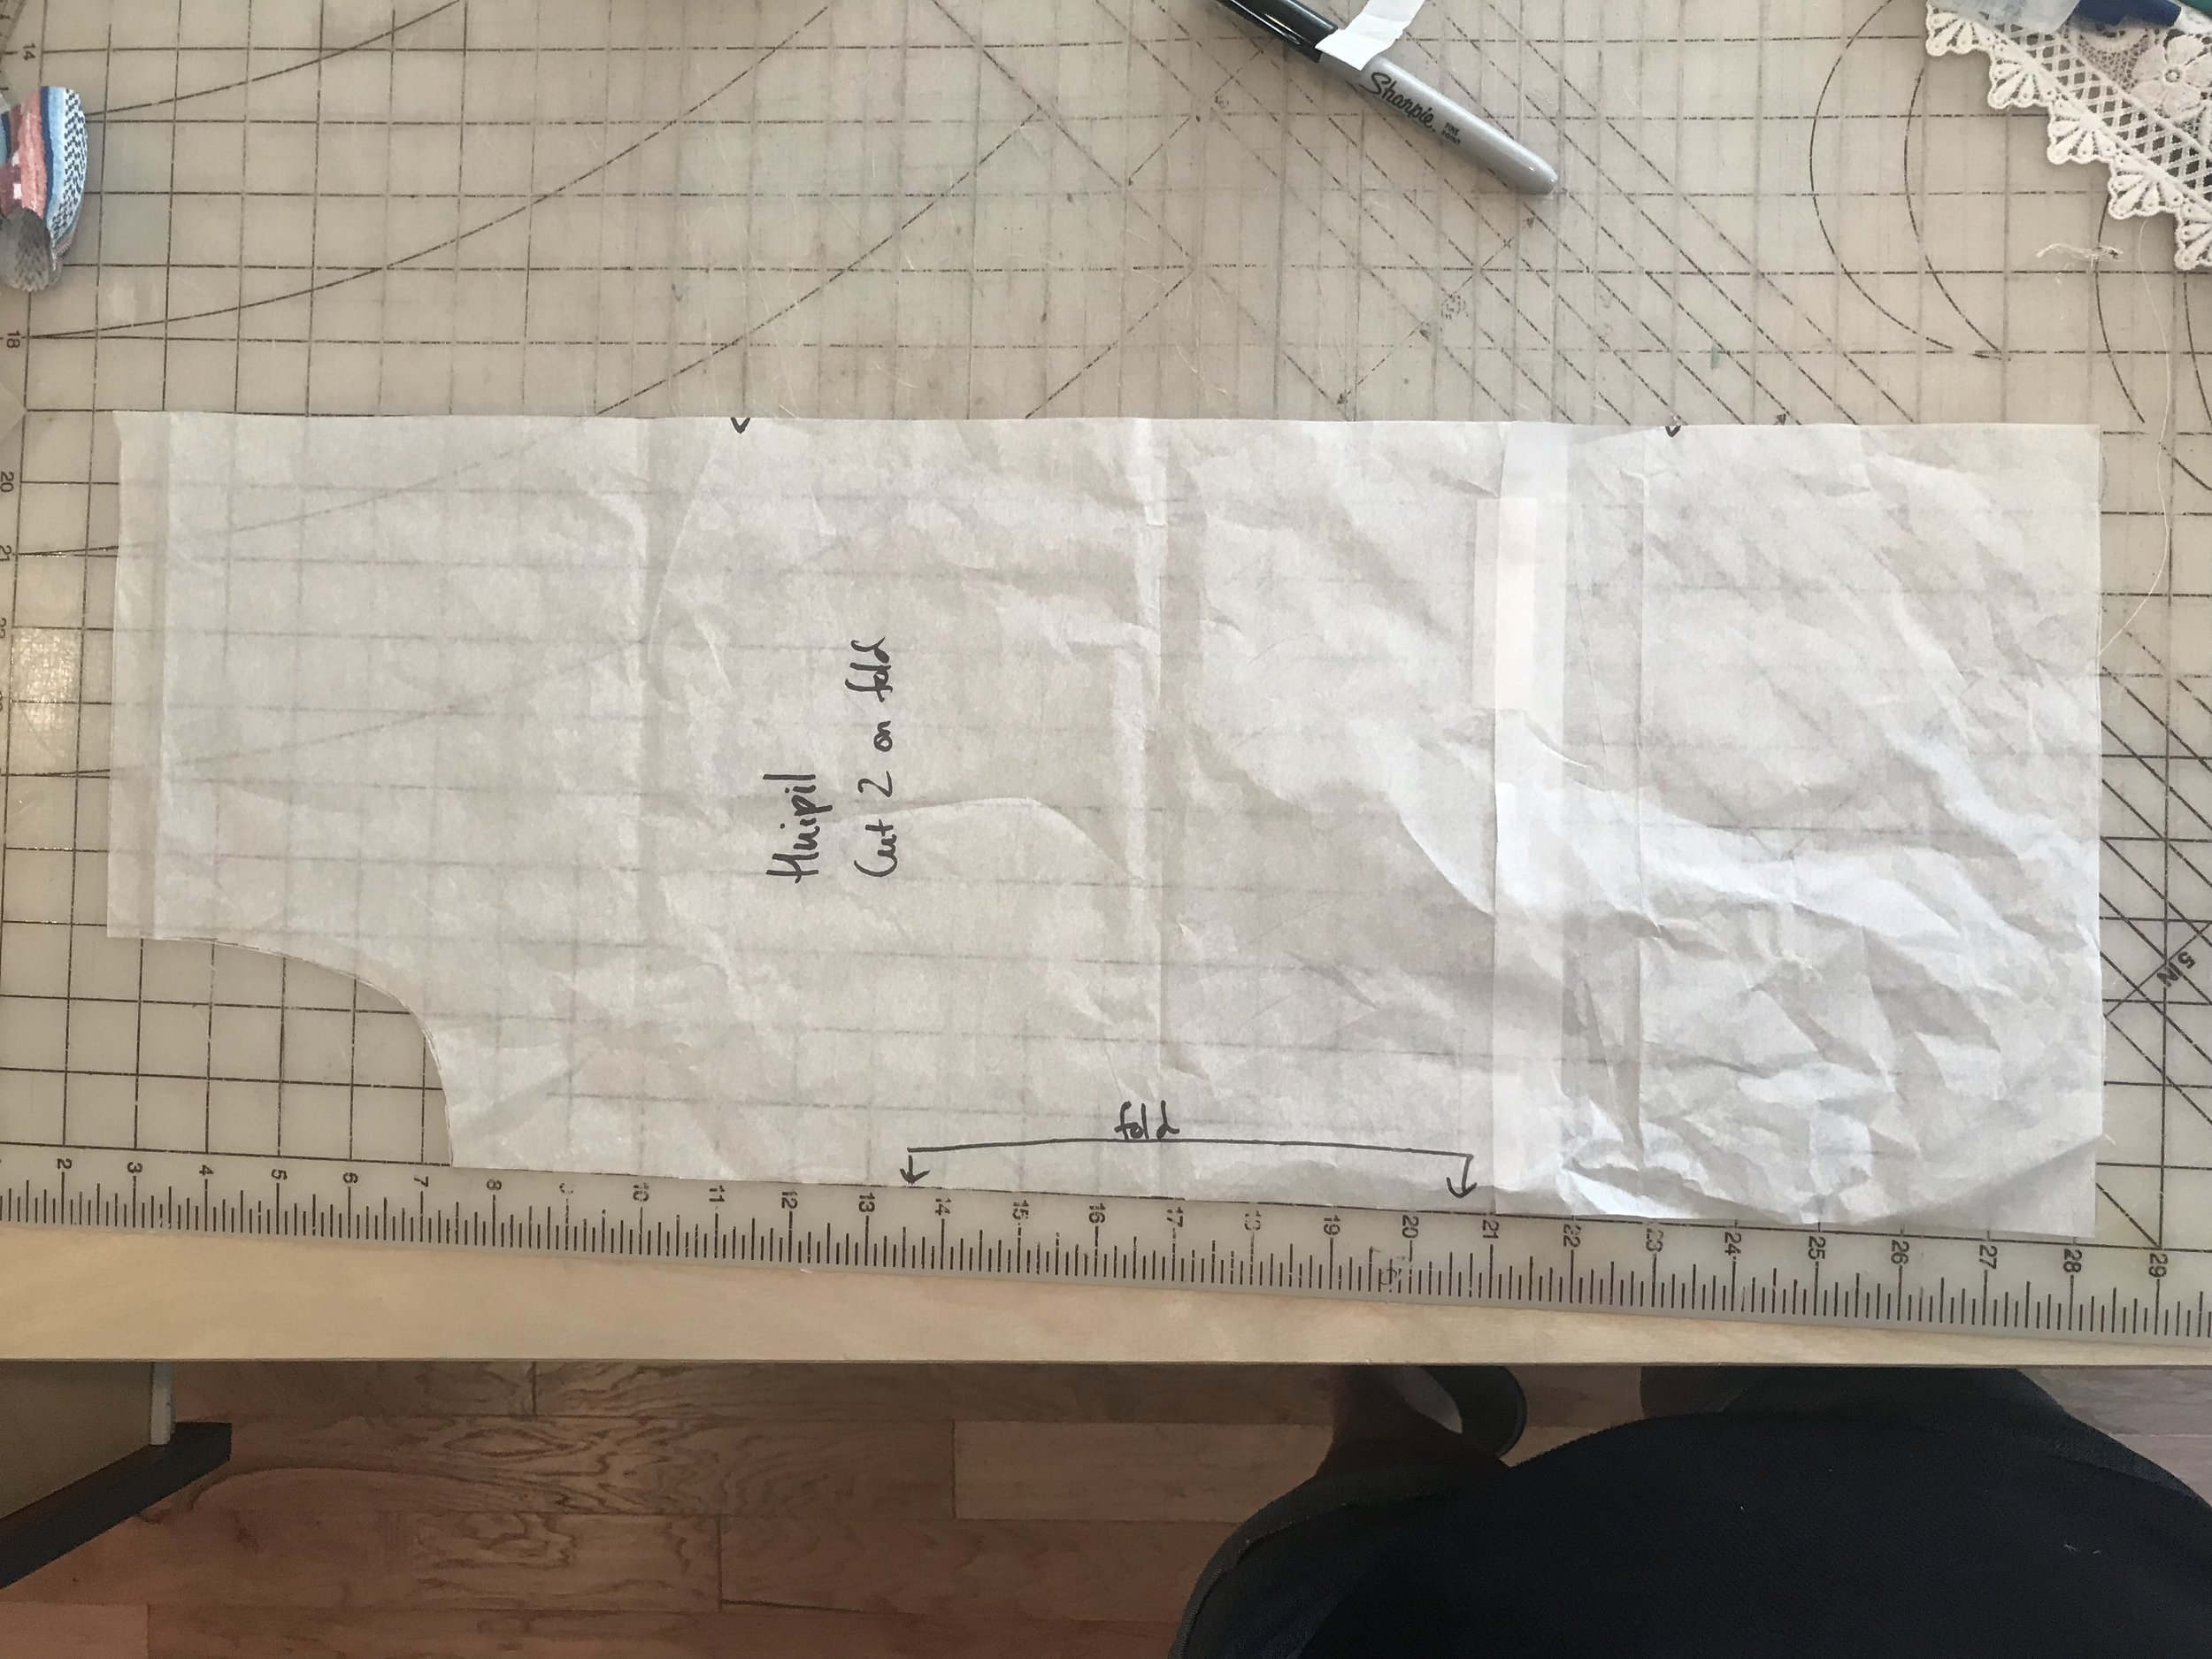 How to draft a rectangle top. So easy, anyone can do it!